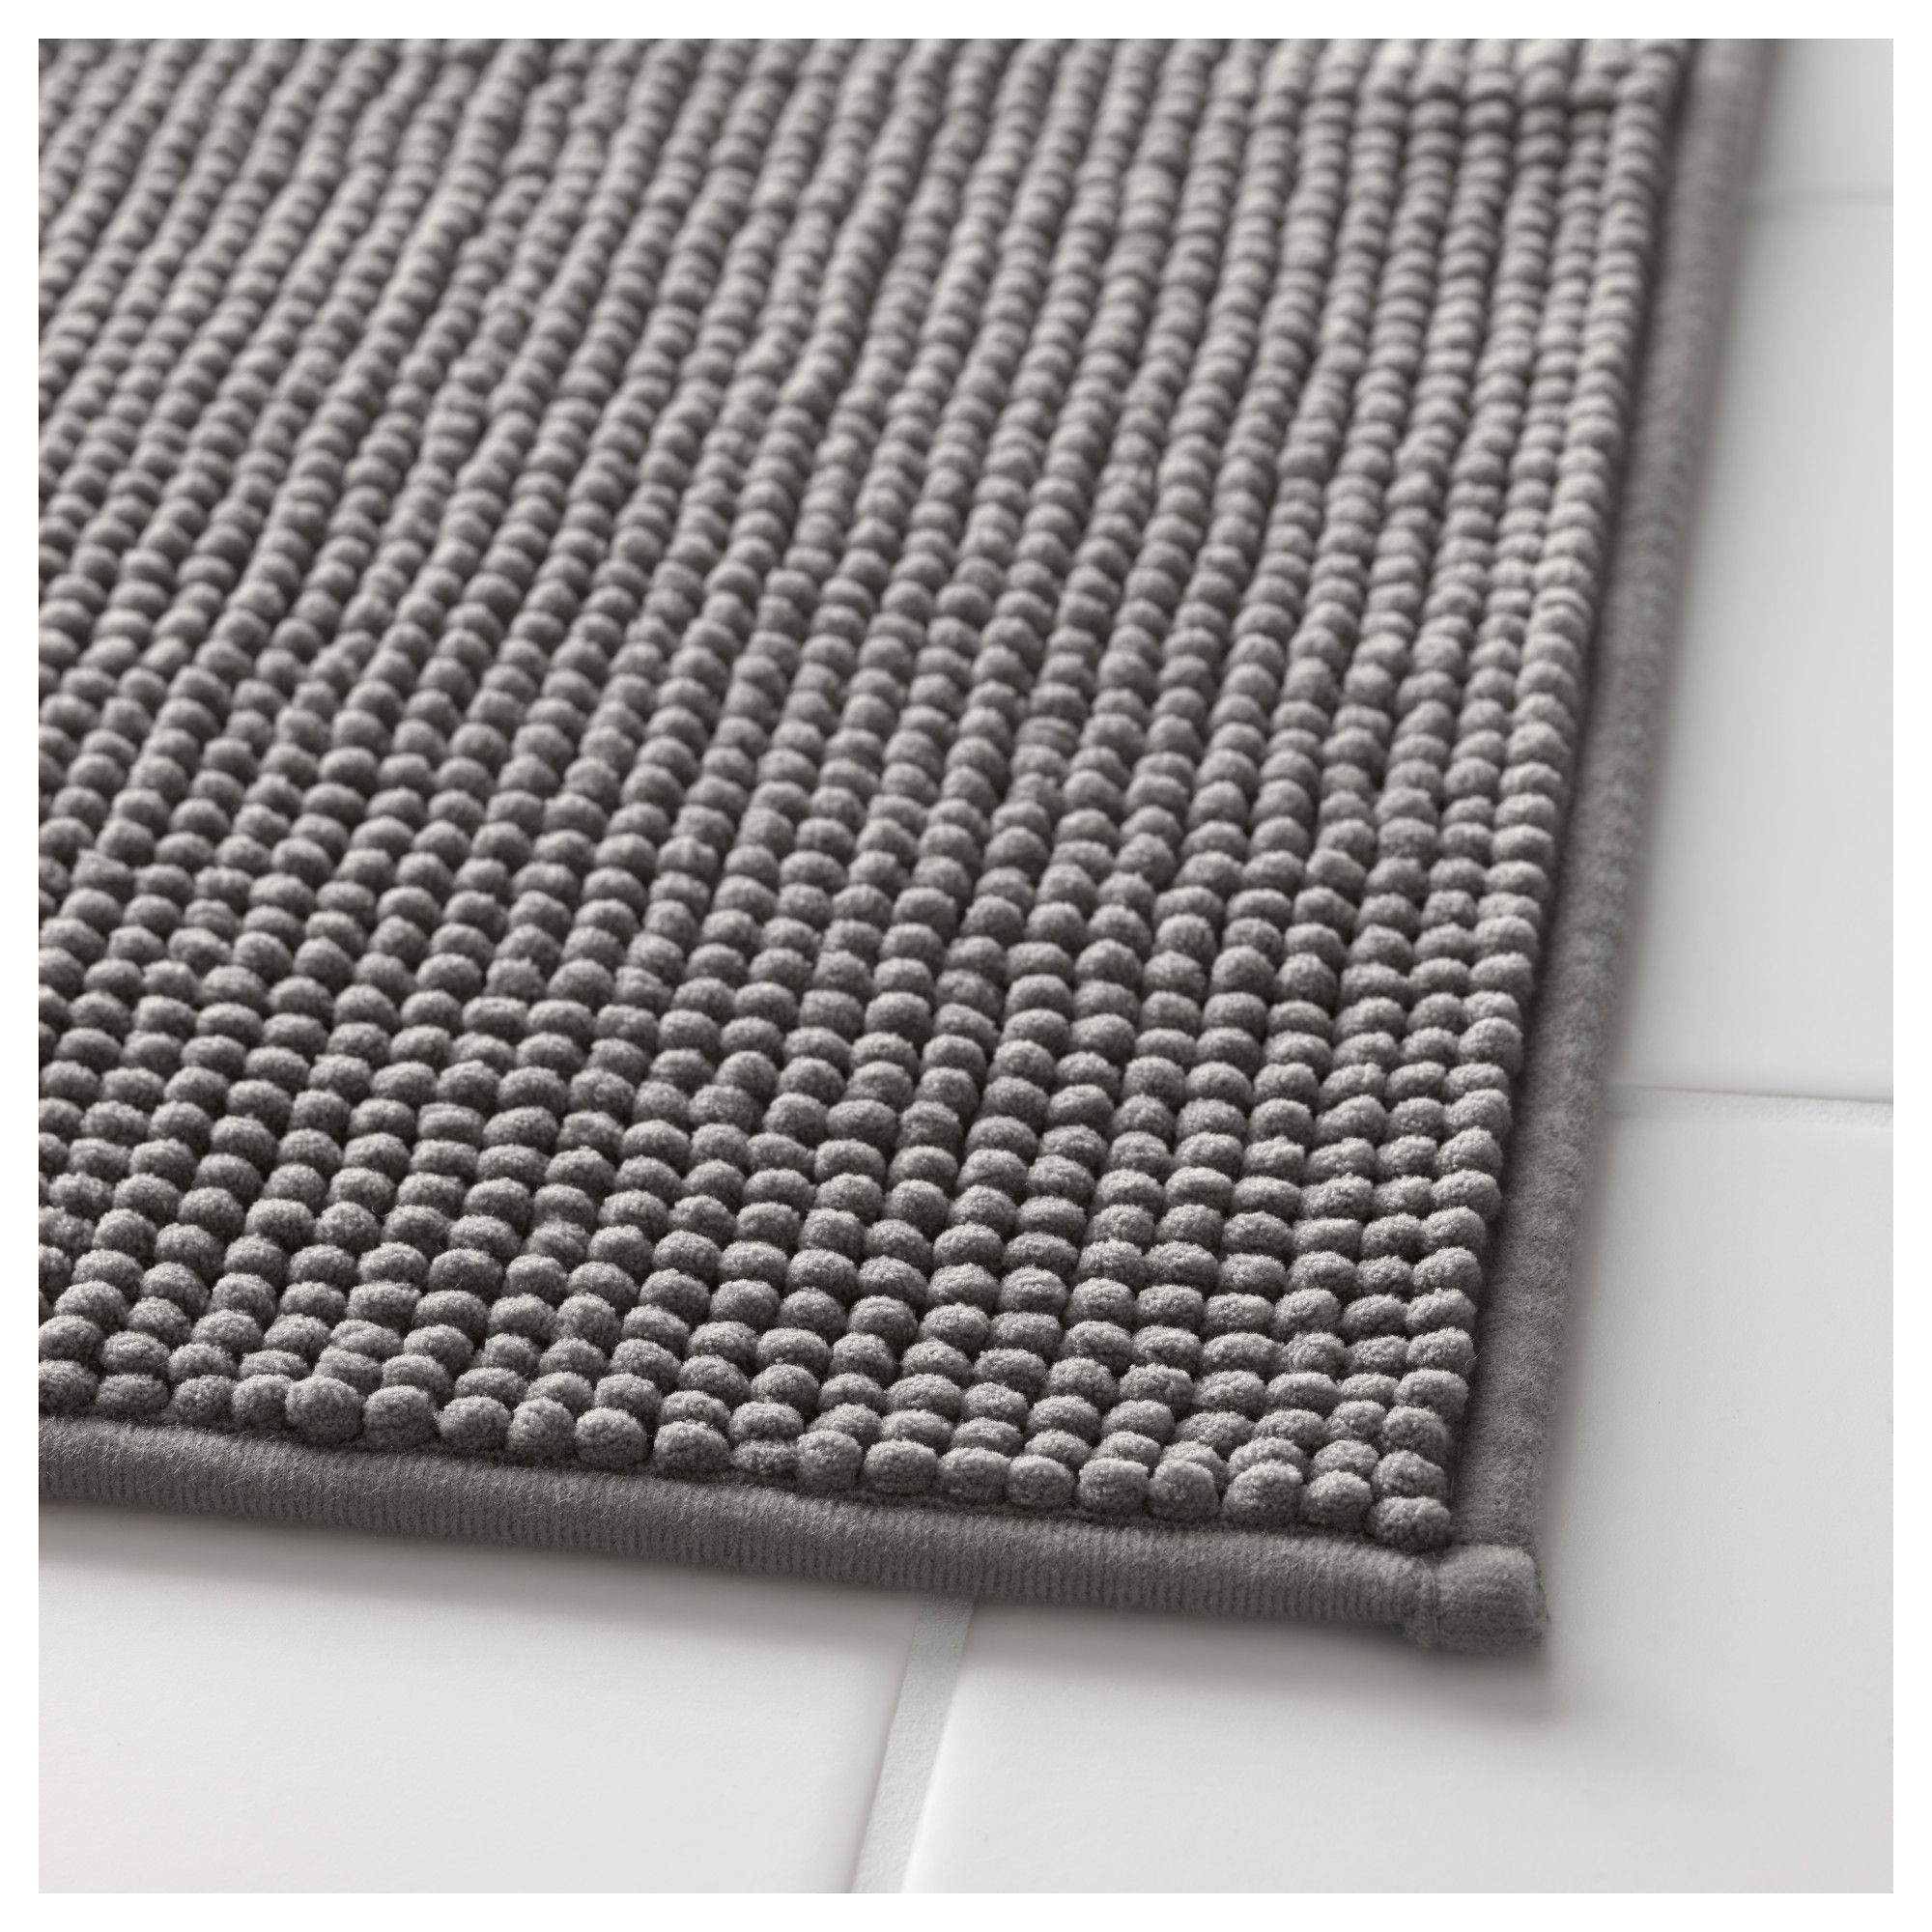 Tapis Wc Ikea Ikea Badaren Bath Mat Gray Apartment Aesthetic Ikea Bath